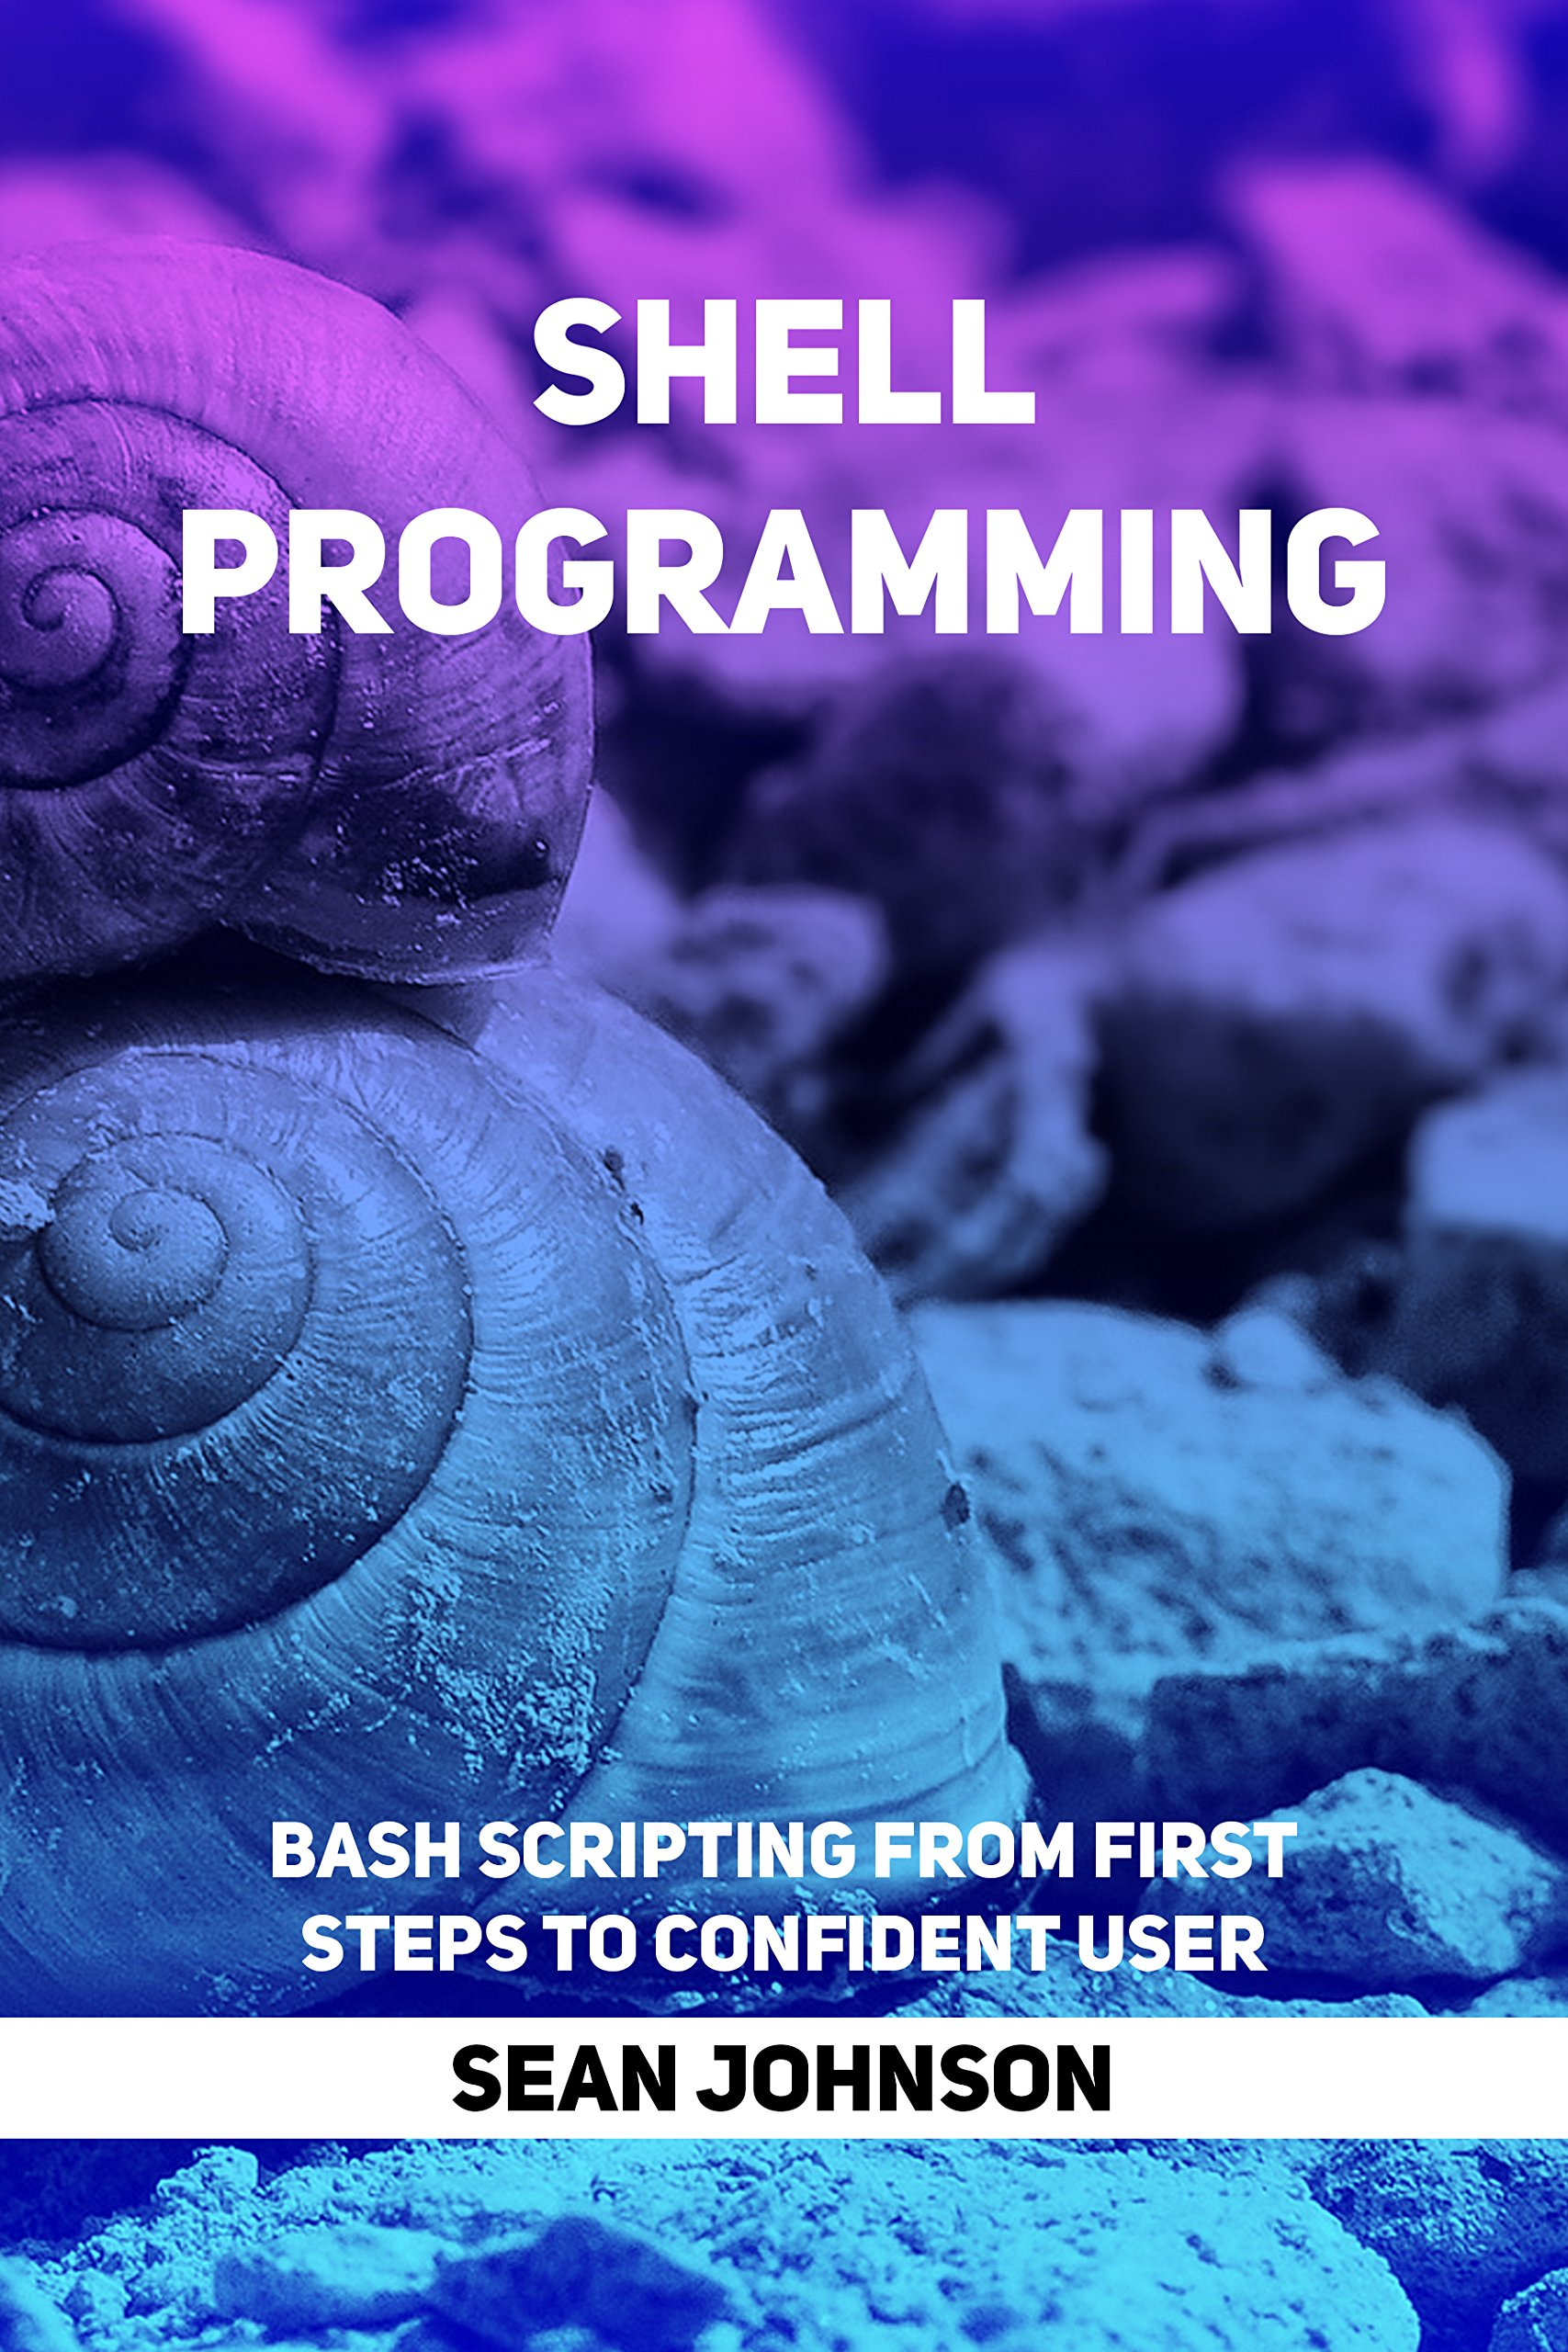 Shell Programming: Bash Scripting from First Steps to Confident User